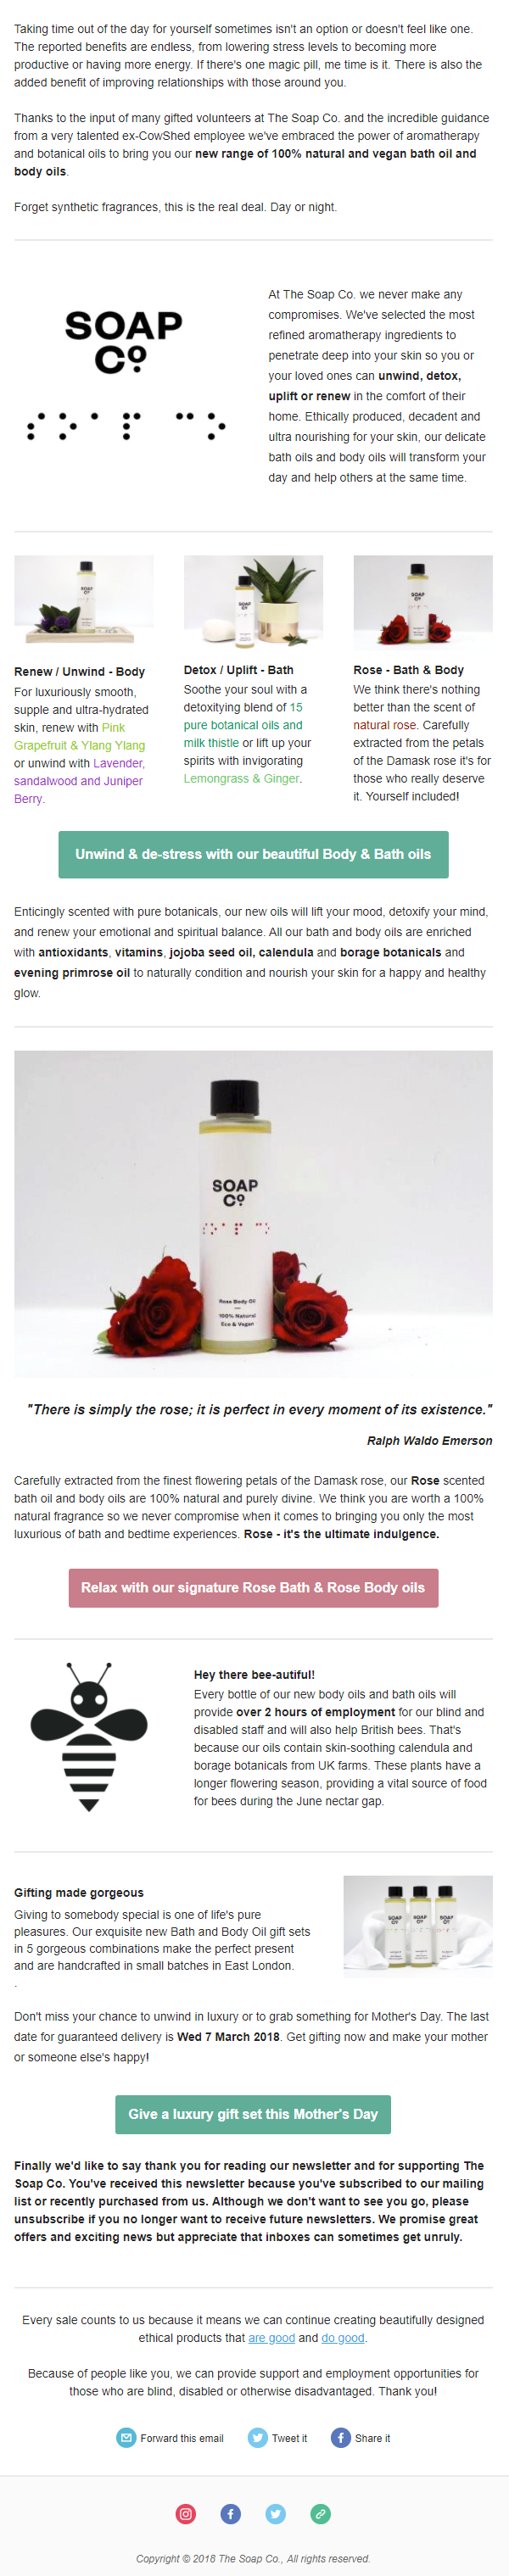 The Soap Co. Body Oils and Bath Oils for Mother's Day